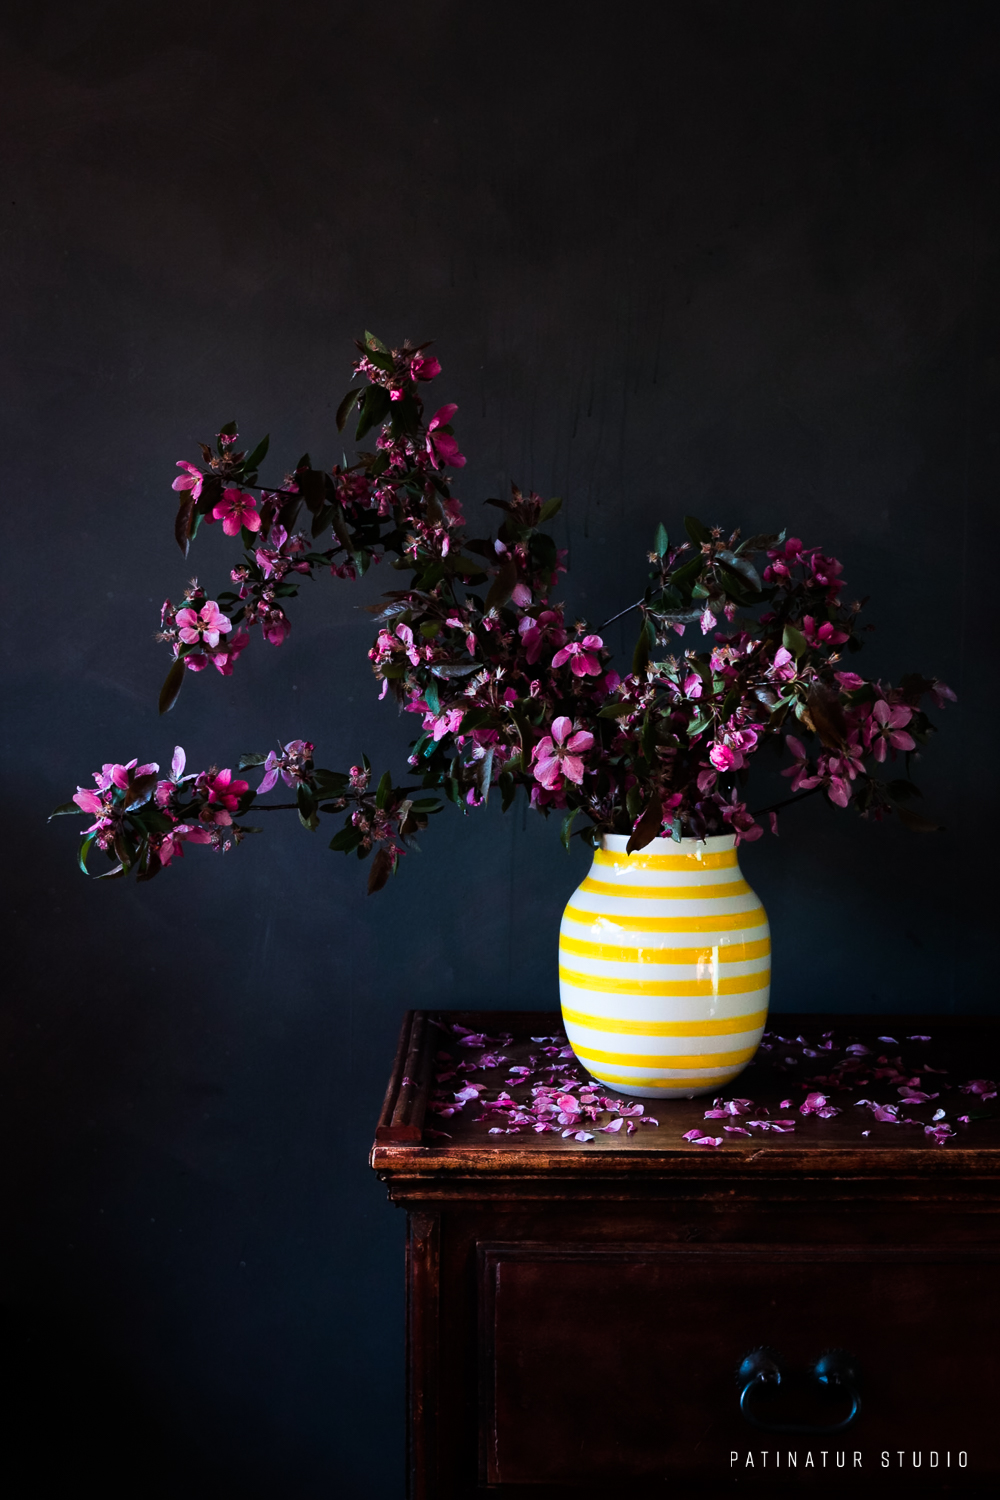 Photo art | Dark and moody still life with pink crabapple blossoms in white and yellow vase